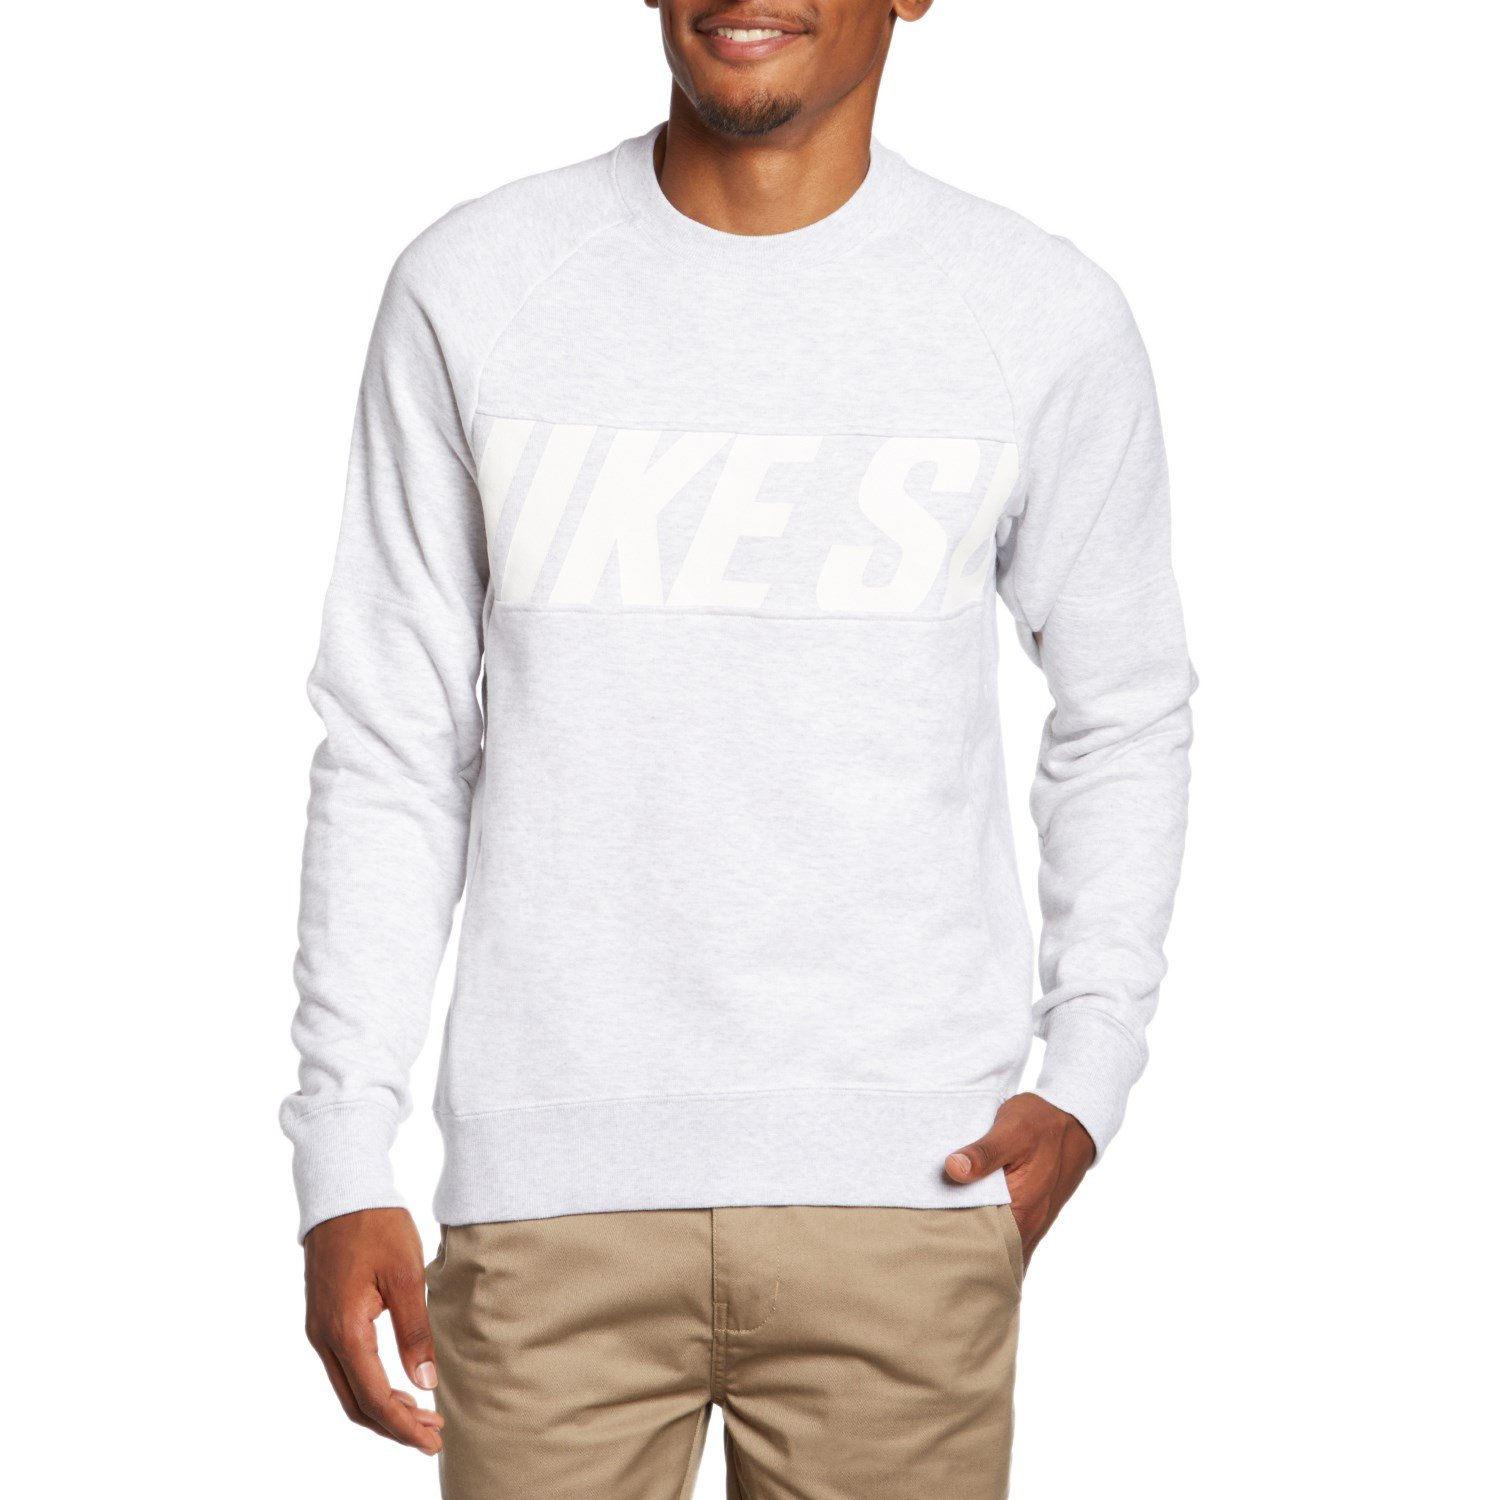 443e23fb7c82 Nike SB Everett Motion Crew Sweatshirt